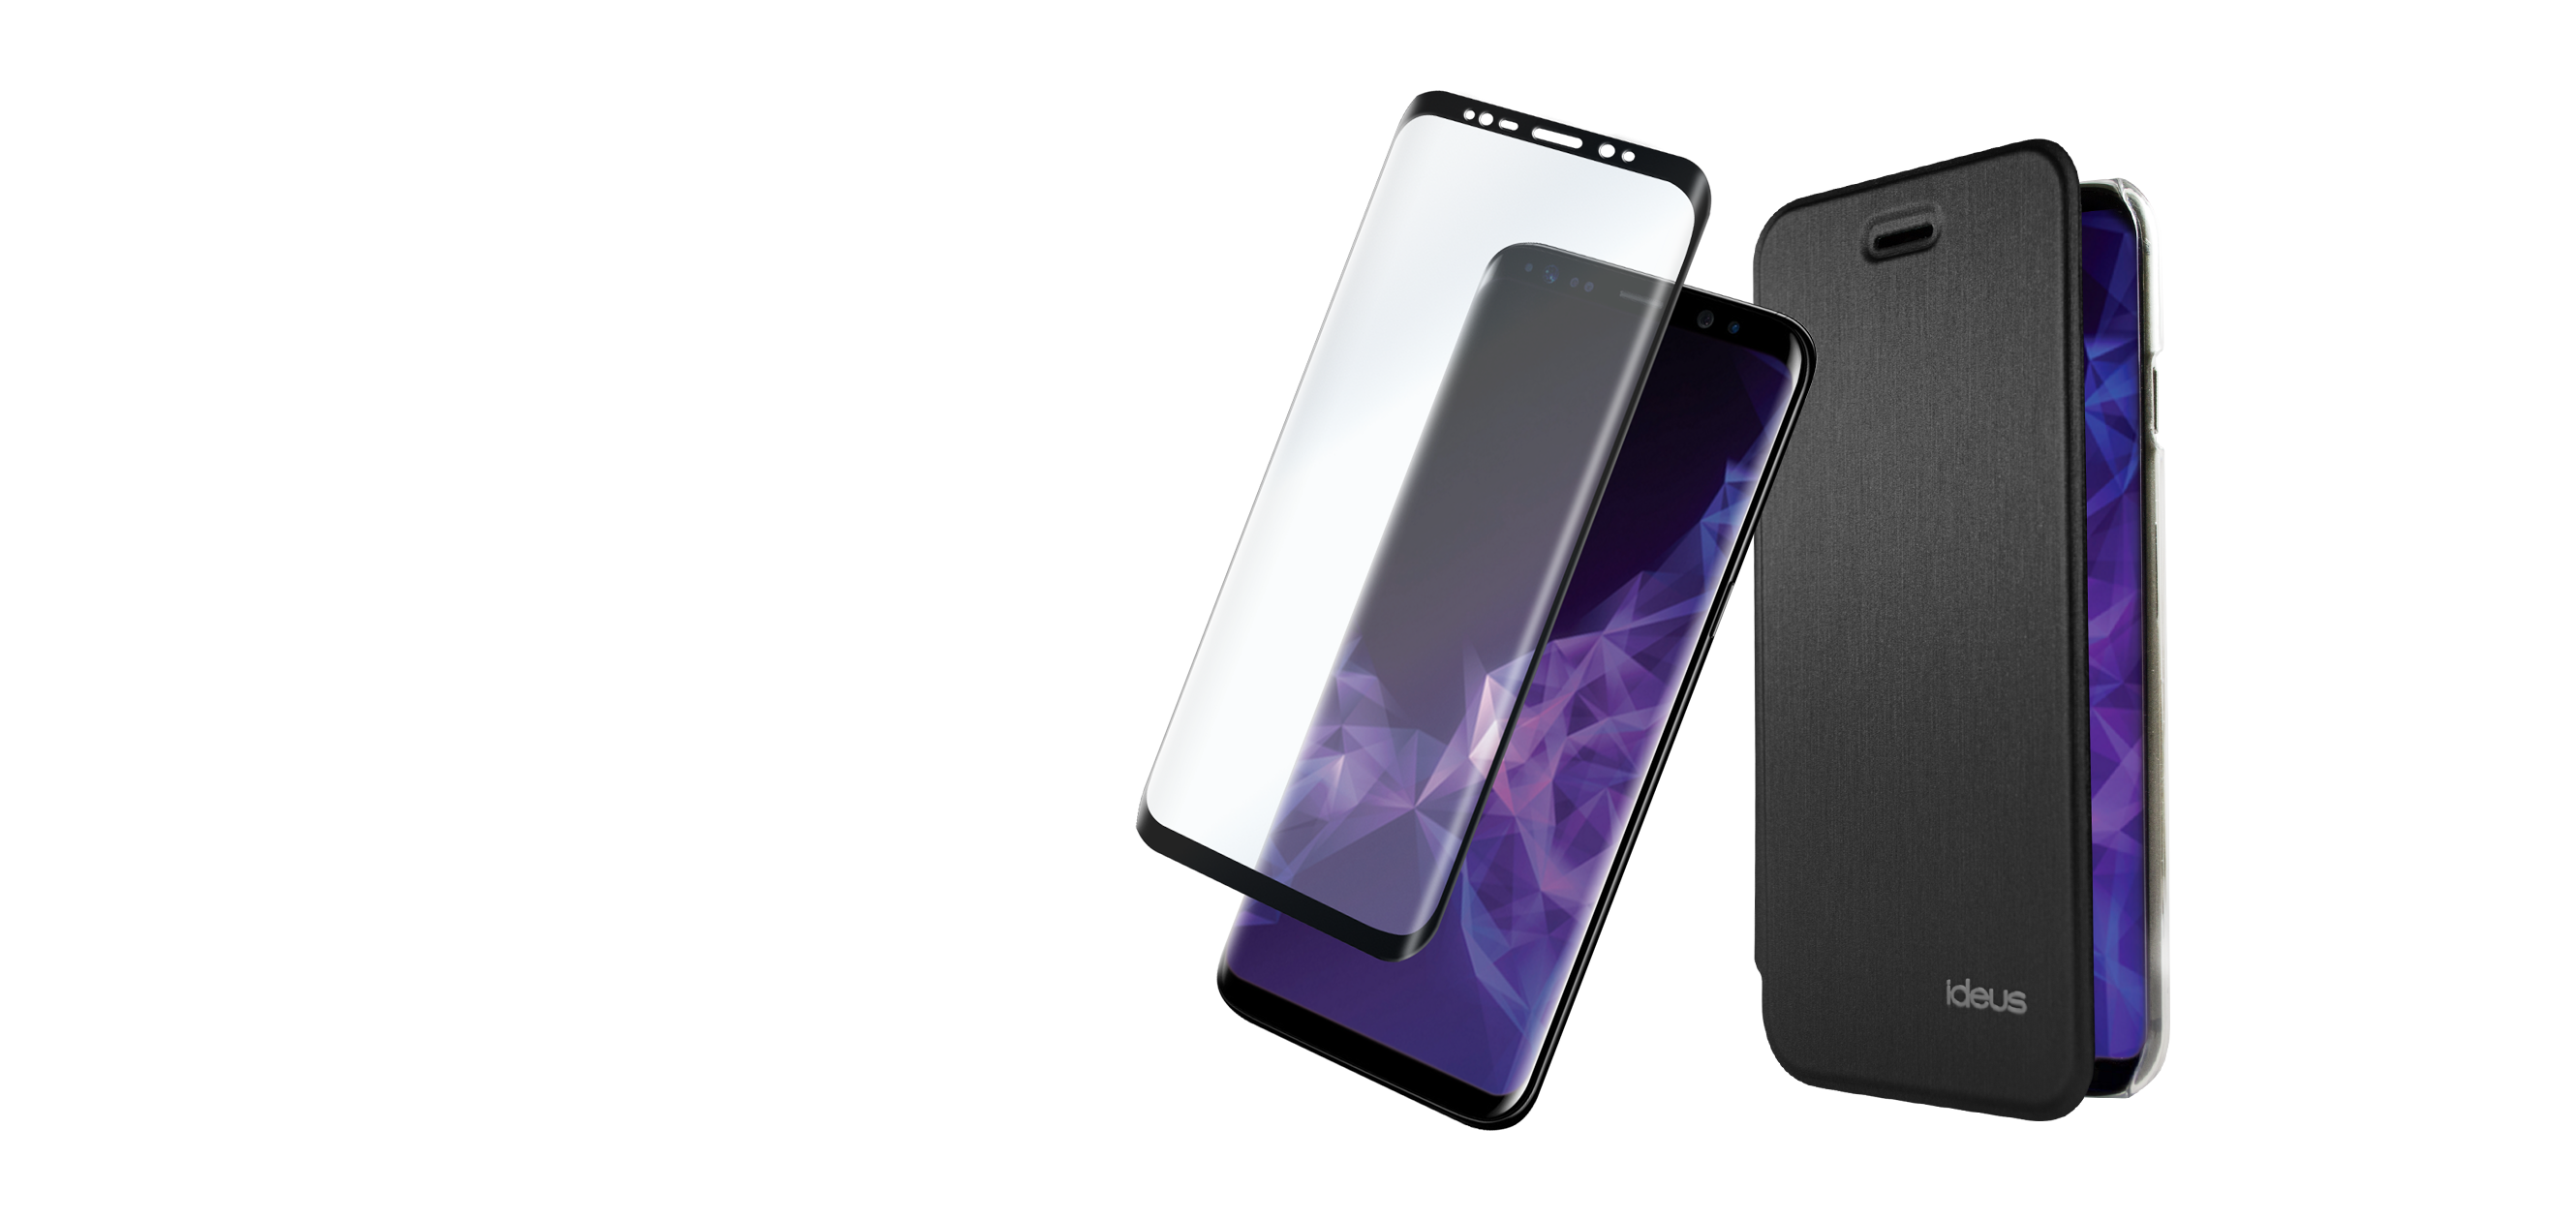 All-new accessories for Galaxy S9 & S9 Plus